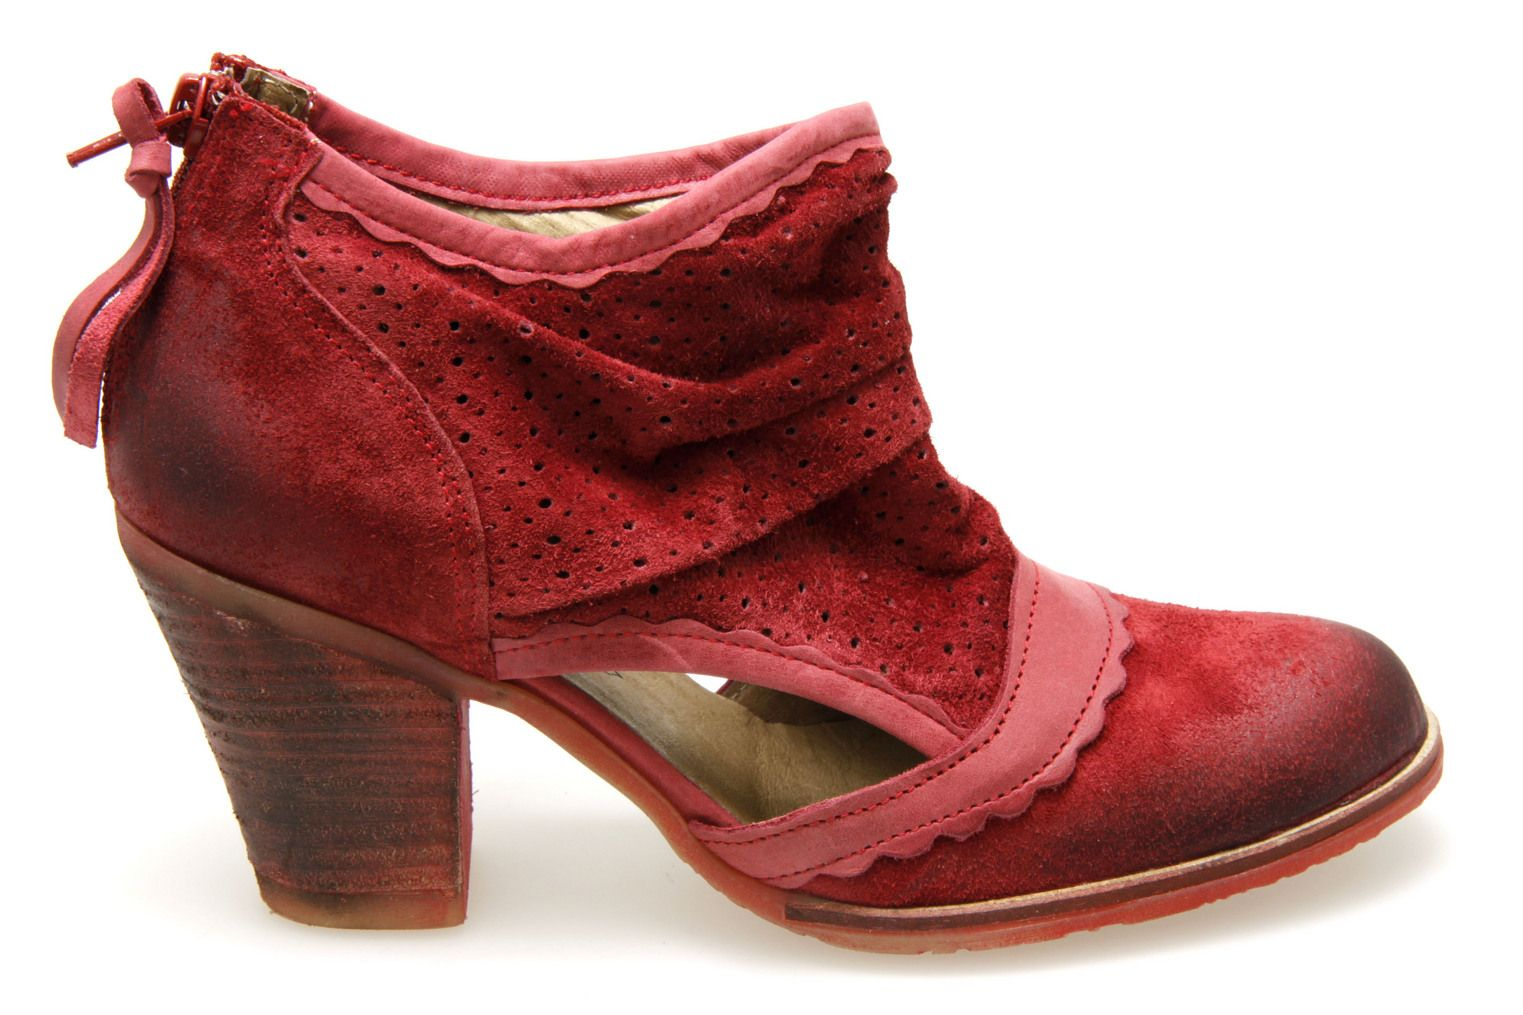 Chaussures Dkode rouges Casual femme wpvlUj